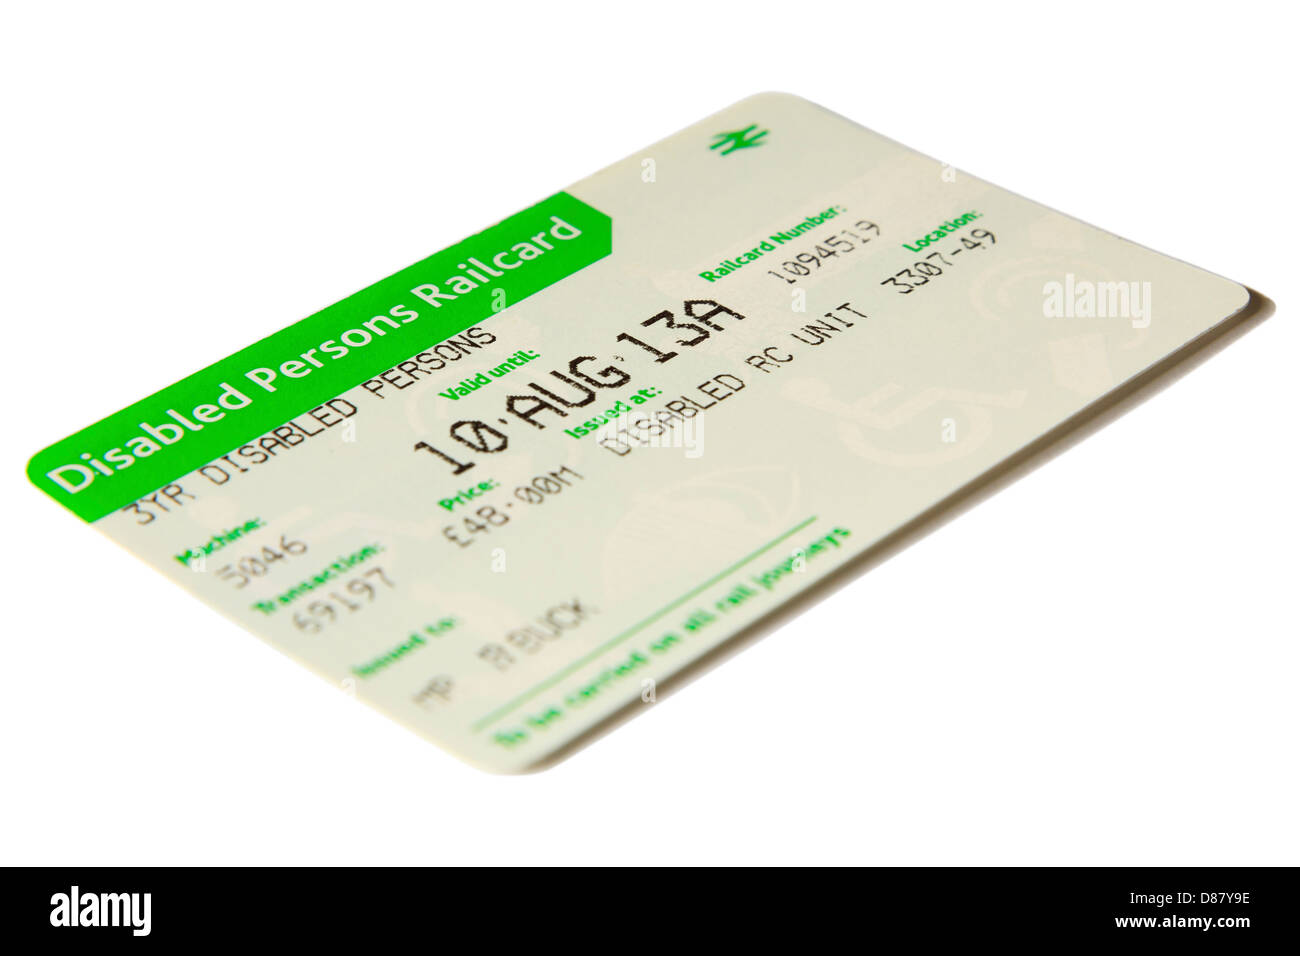 3YR Disabled Persons Railcard for reduced rail fares and cheap train travel isolated on a plain white background. - Stock Image